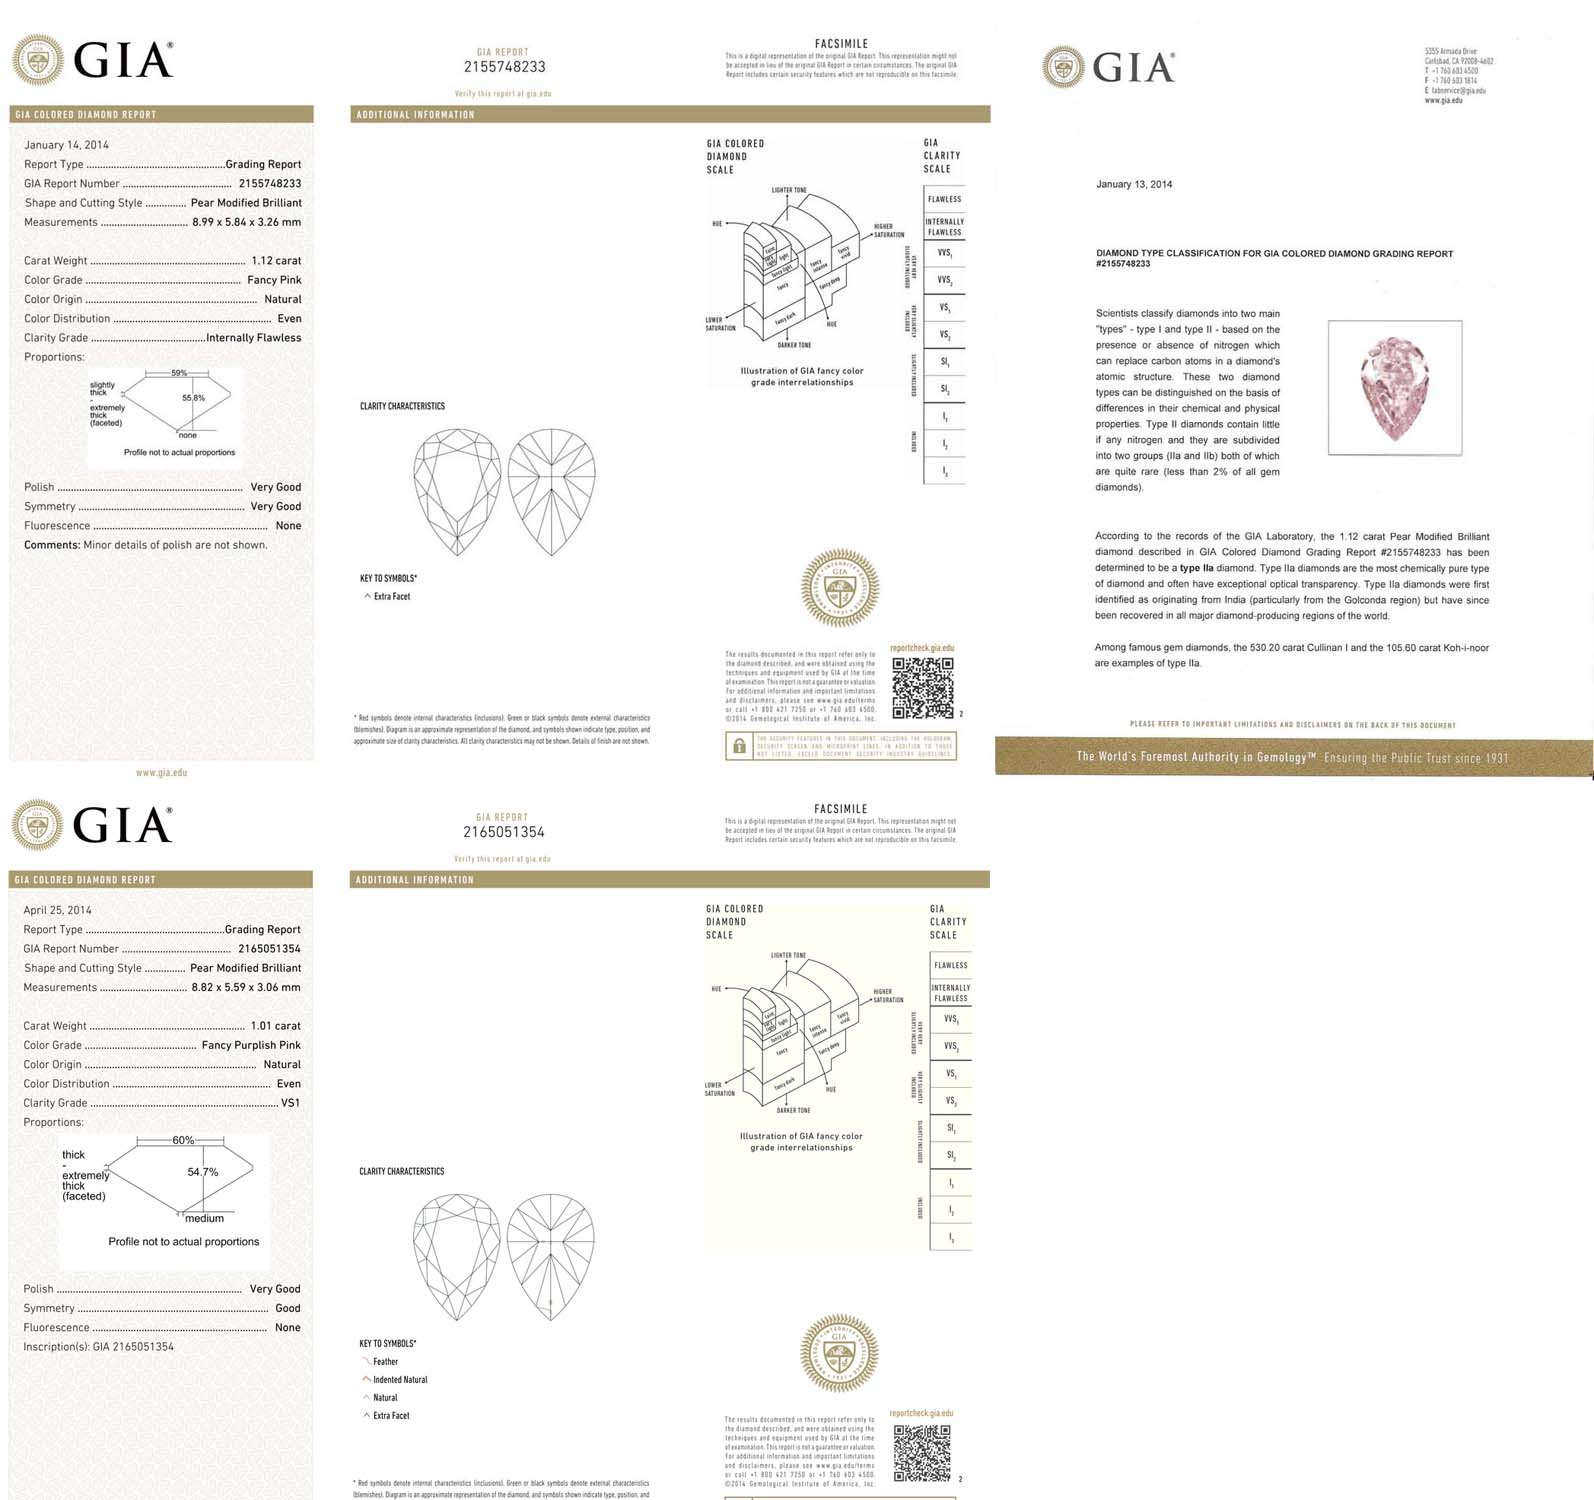 get gia report retailer grading focus is fine us how en dossier the jewelry diamond or convenient most to a through local hero way reportfan obtain